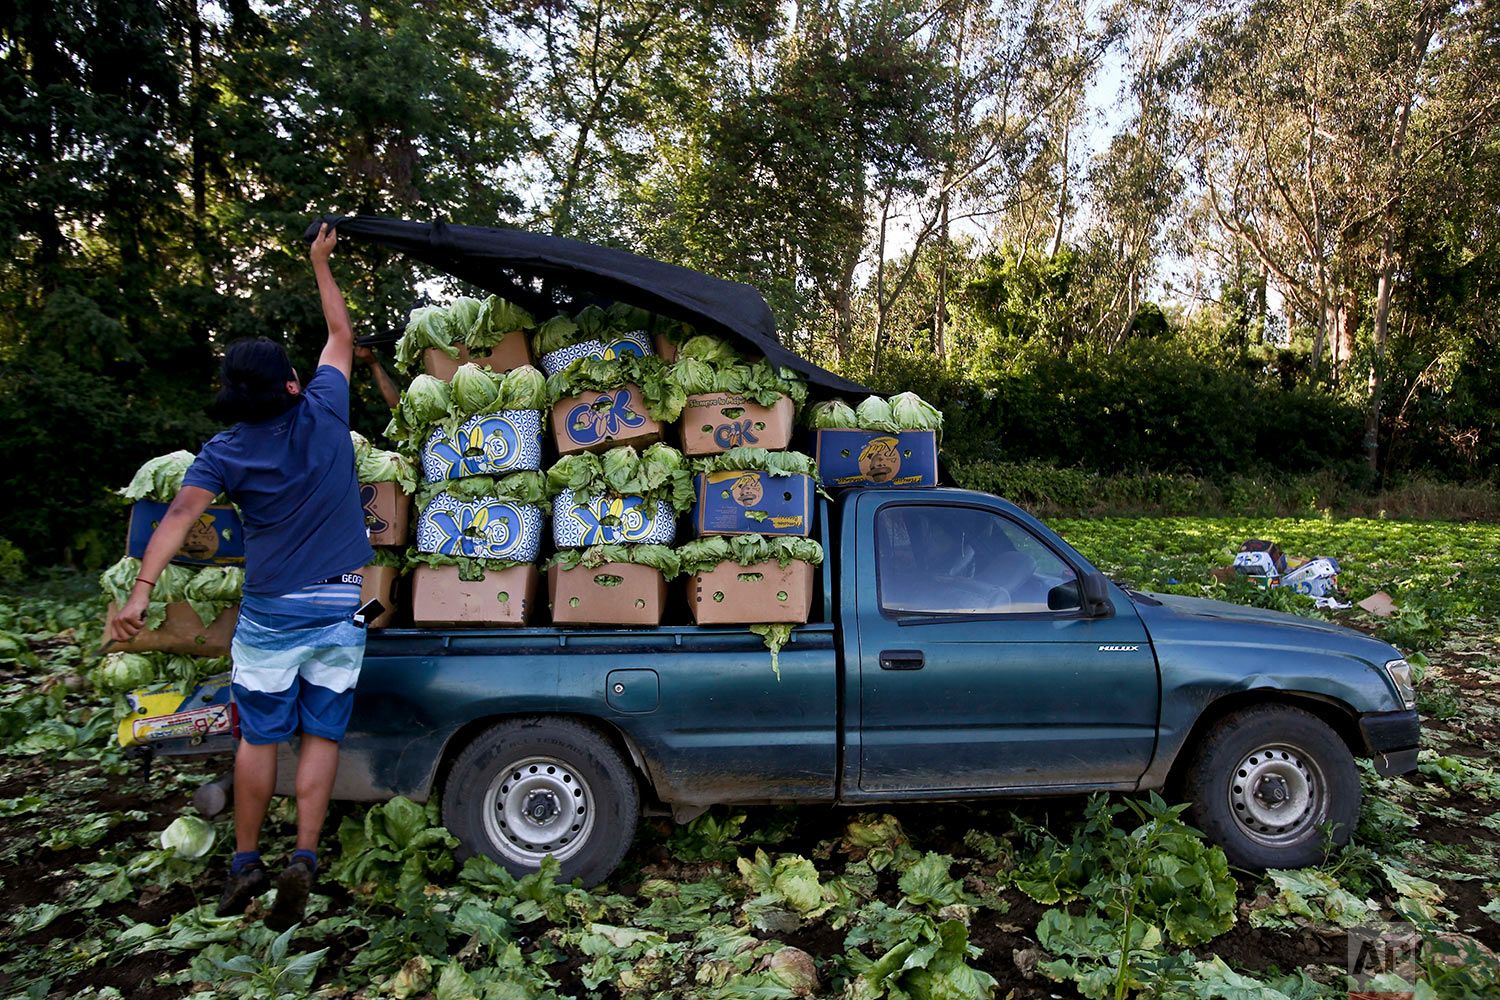 In this Monday, Jan. 8, 2018 photo, a Mapuche covers a truck with lettuce harvested on a rented land near of the air base where Pope Francis will celebrate Mass, in Temuco, Chile. (AP Photo/Esteban Felix)| See these photos on AP Images